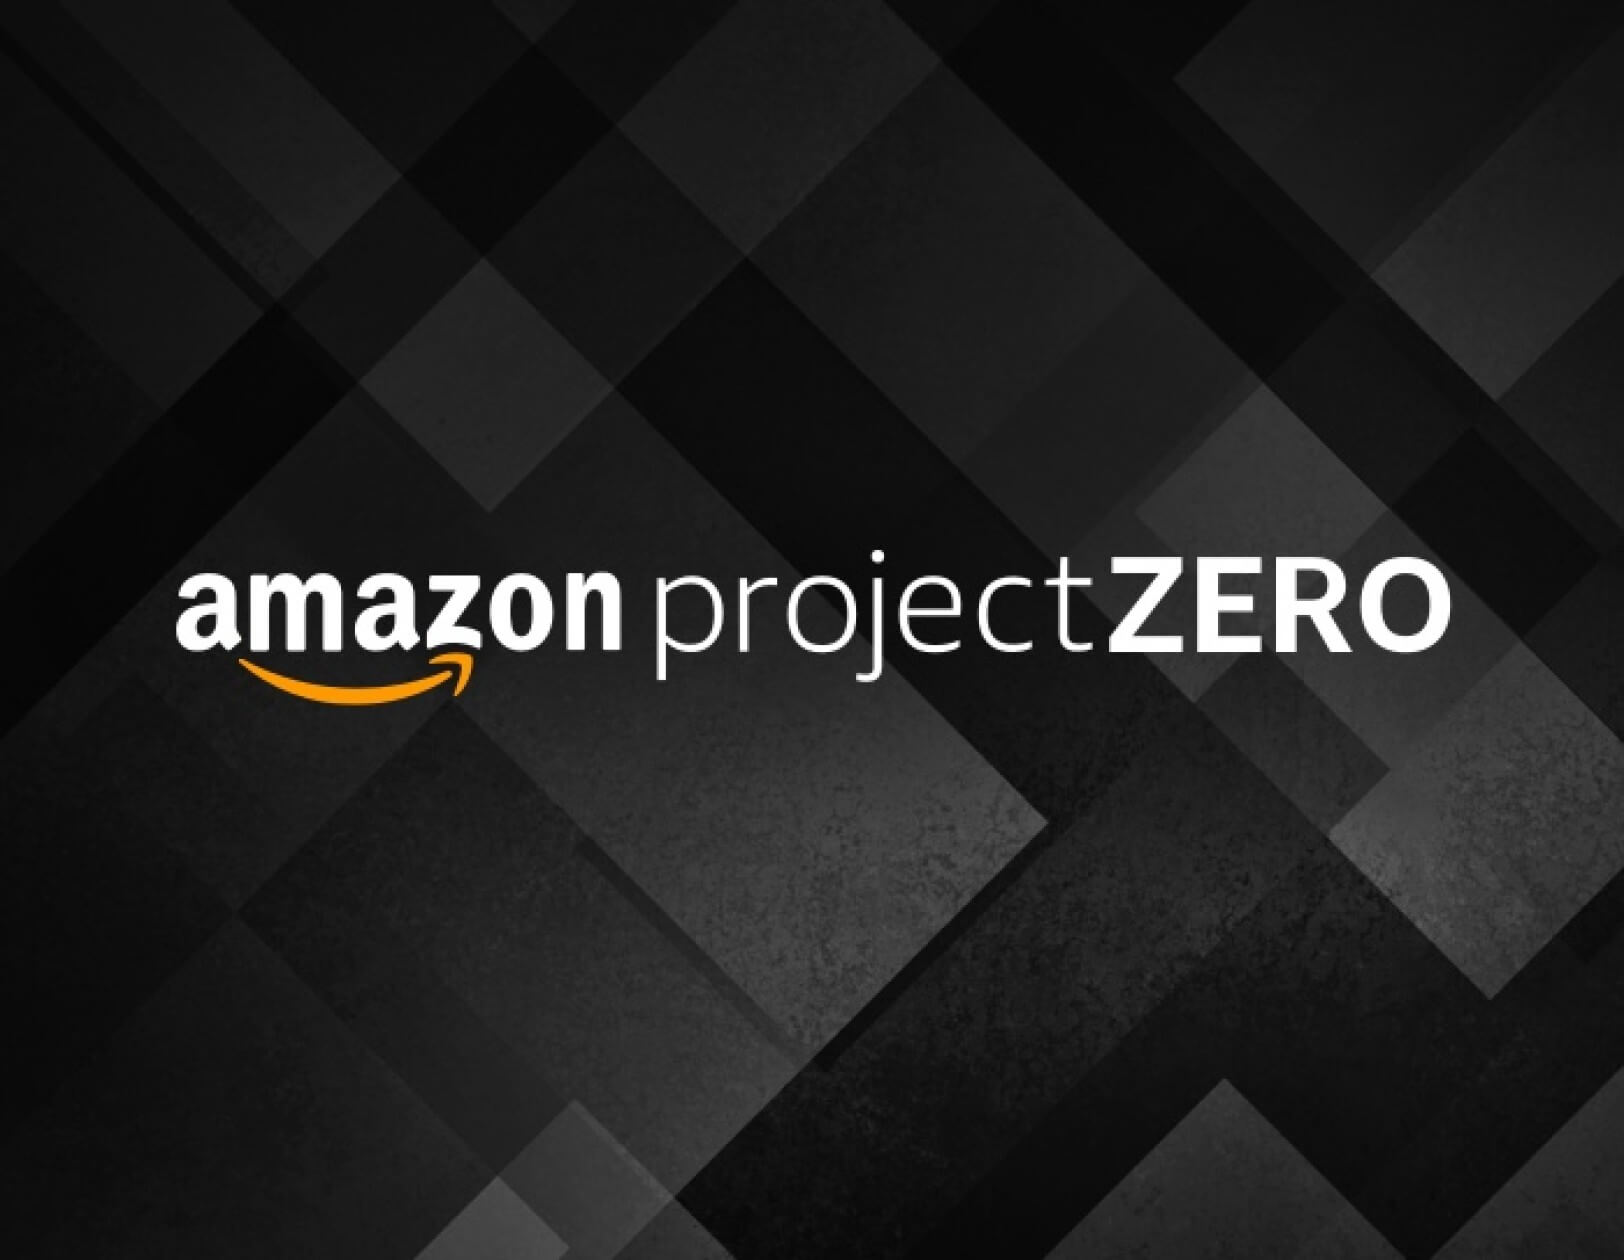 Amazon's Project Zero launches to help brands fight counterfeiters